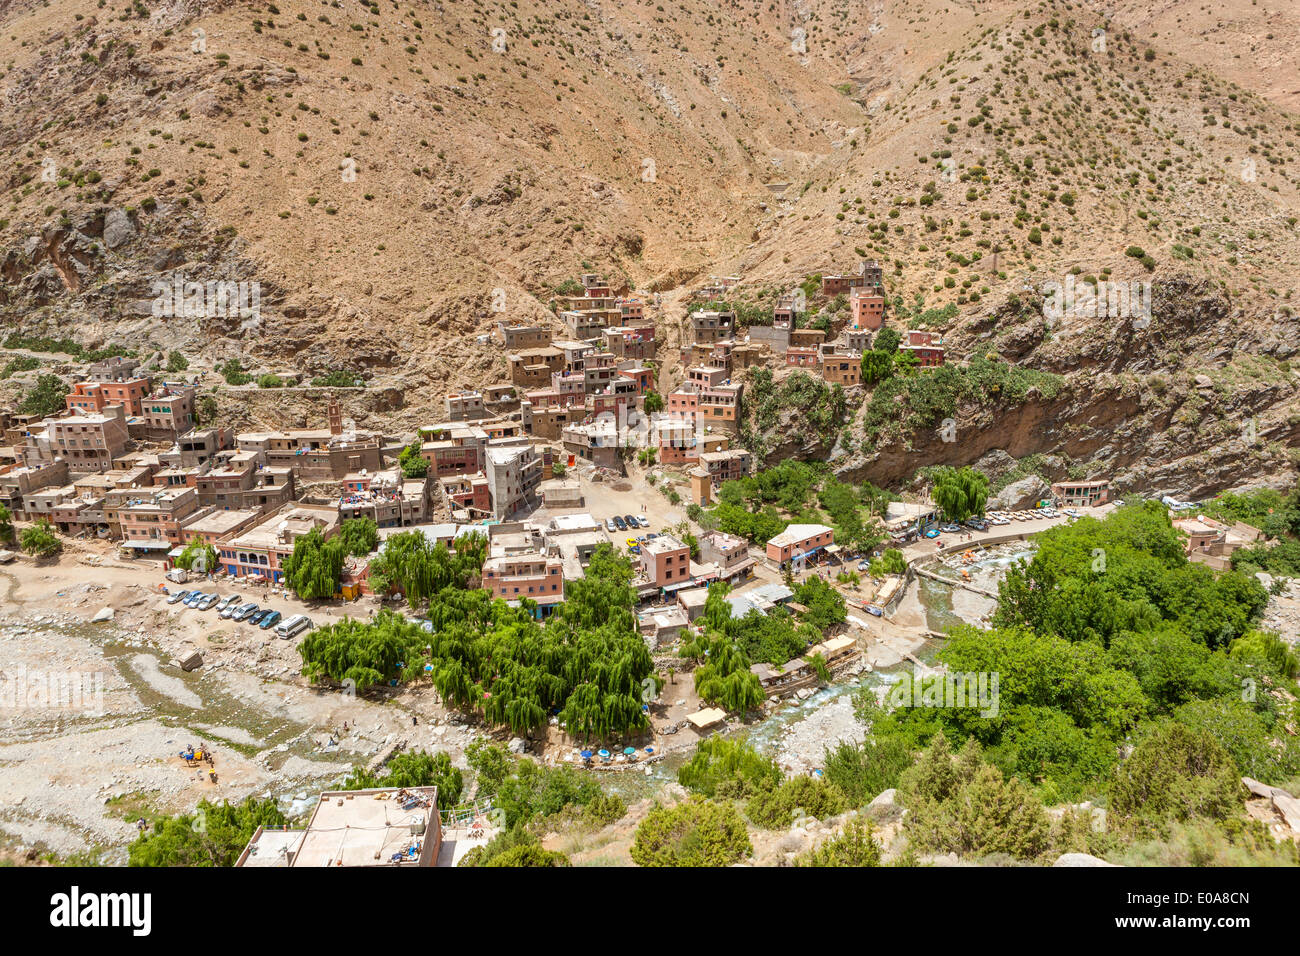 View of the village of Setti-Fatma in the Ourika valley in the Atlas mountains, Morocco, North Africa. Stock Photo